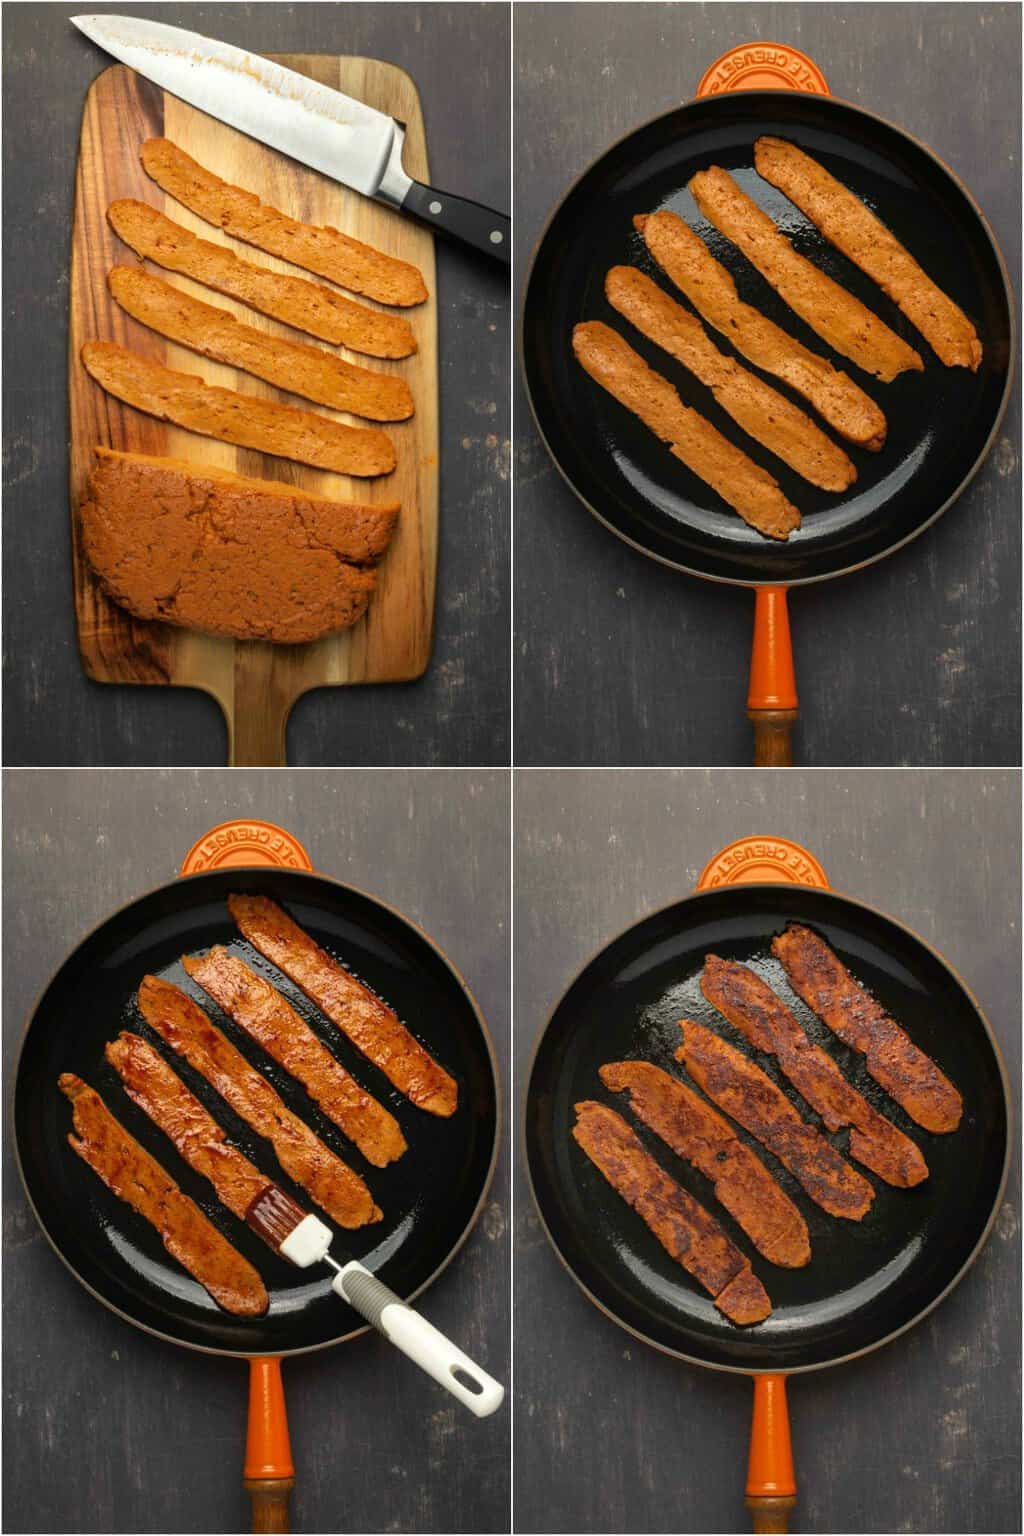 Step by step process photo collage of making vegan bacon.